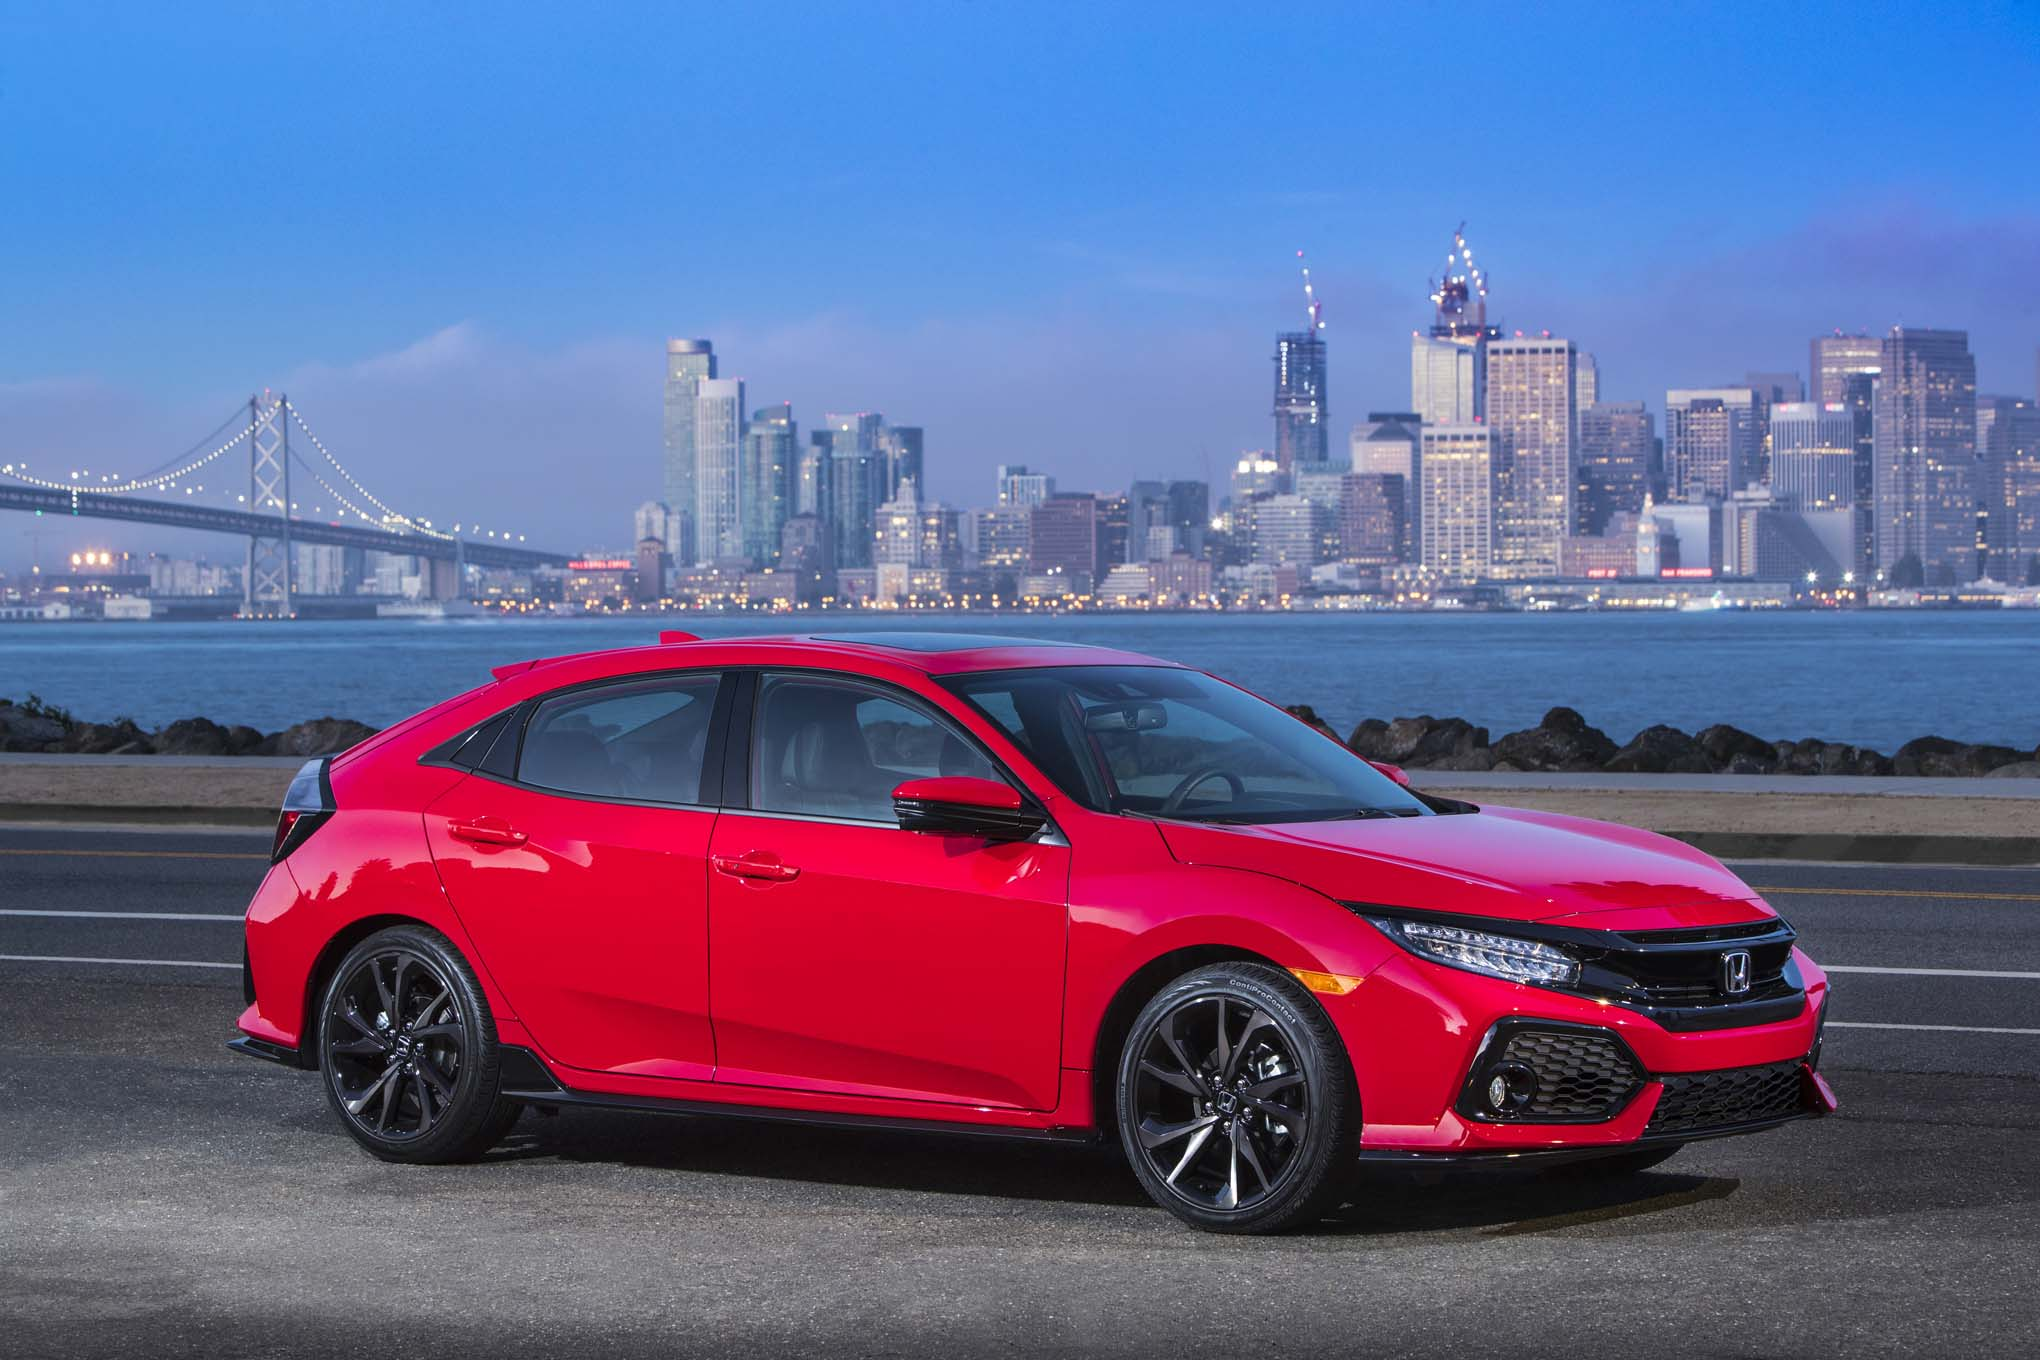 2017 All Stars Contender Honda Civic Hatchback Sport Automobile